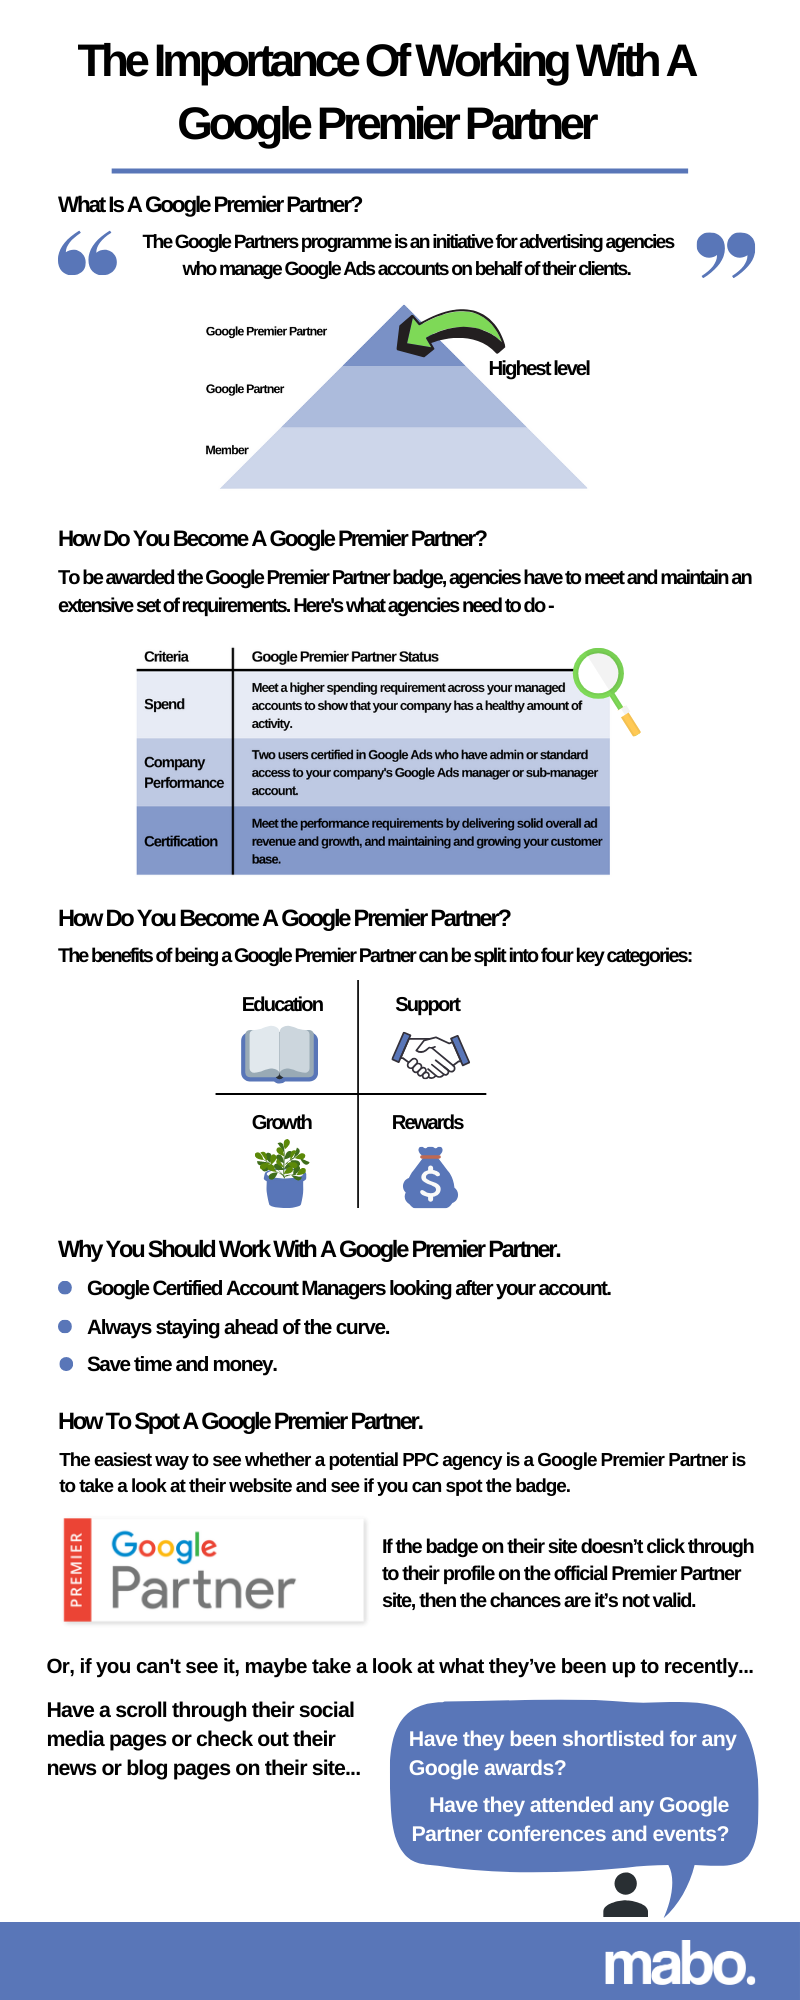 The Importance Of Working With A Google Premier Partner